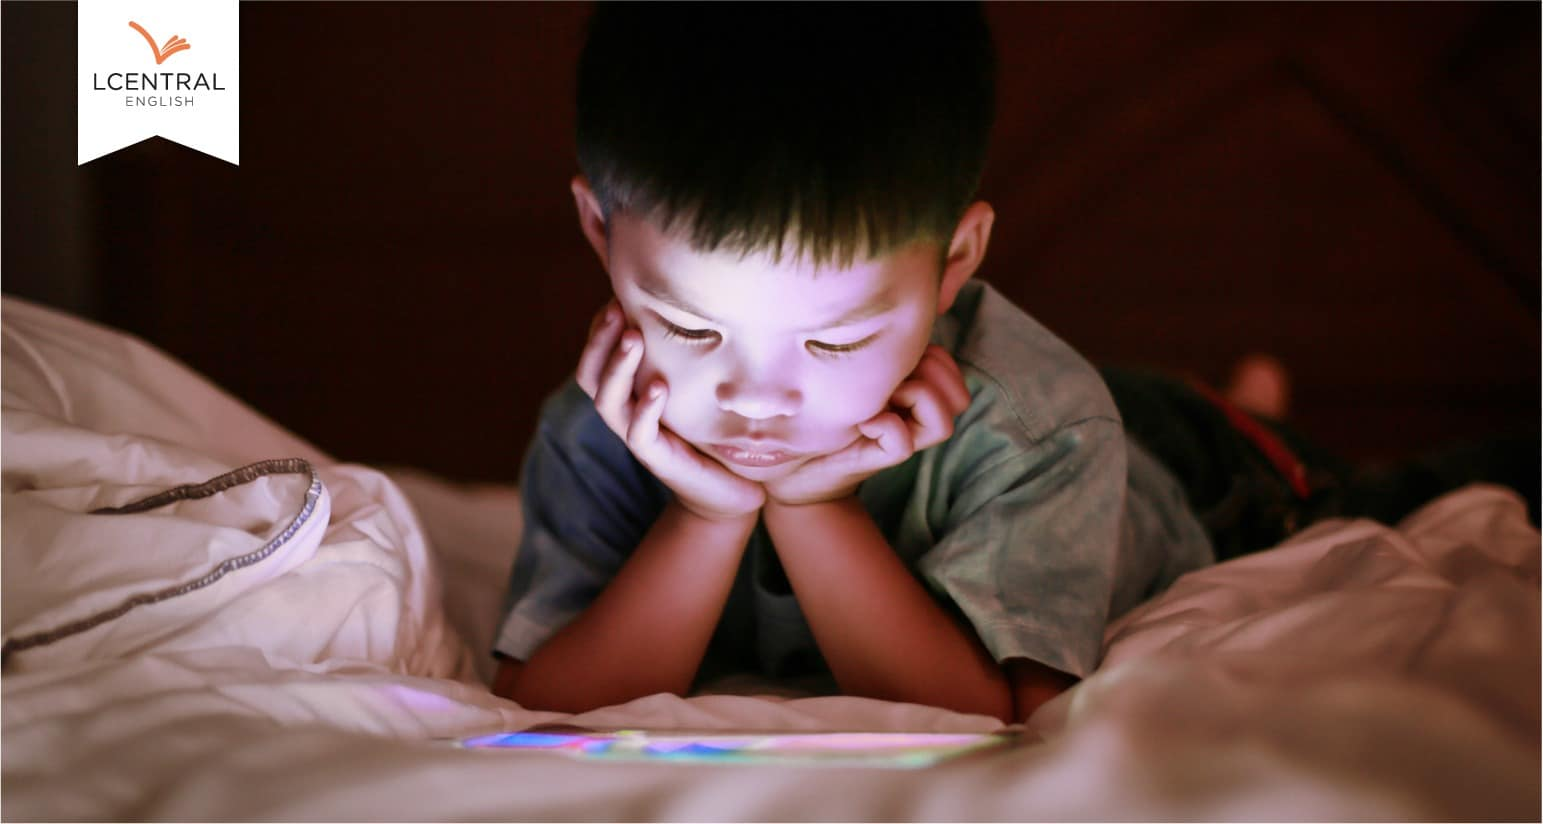 The child using tech gadgets during school breaks